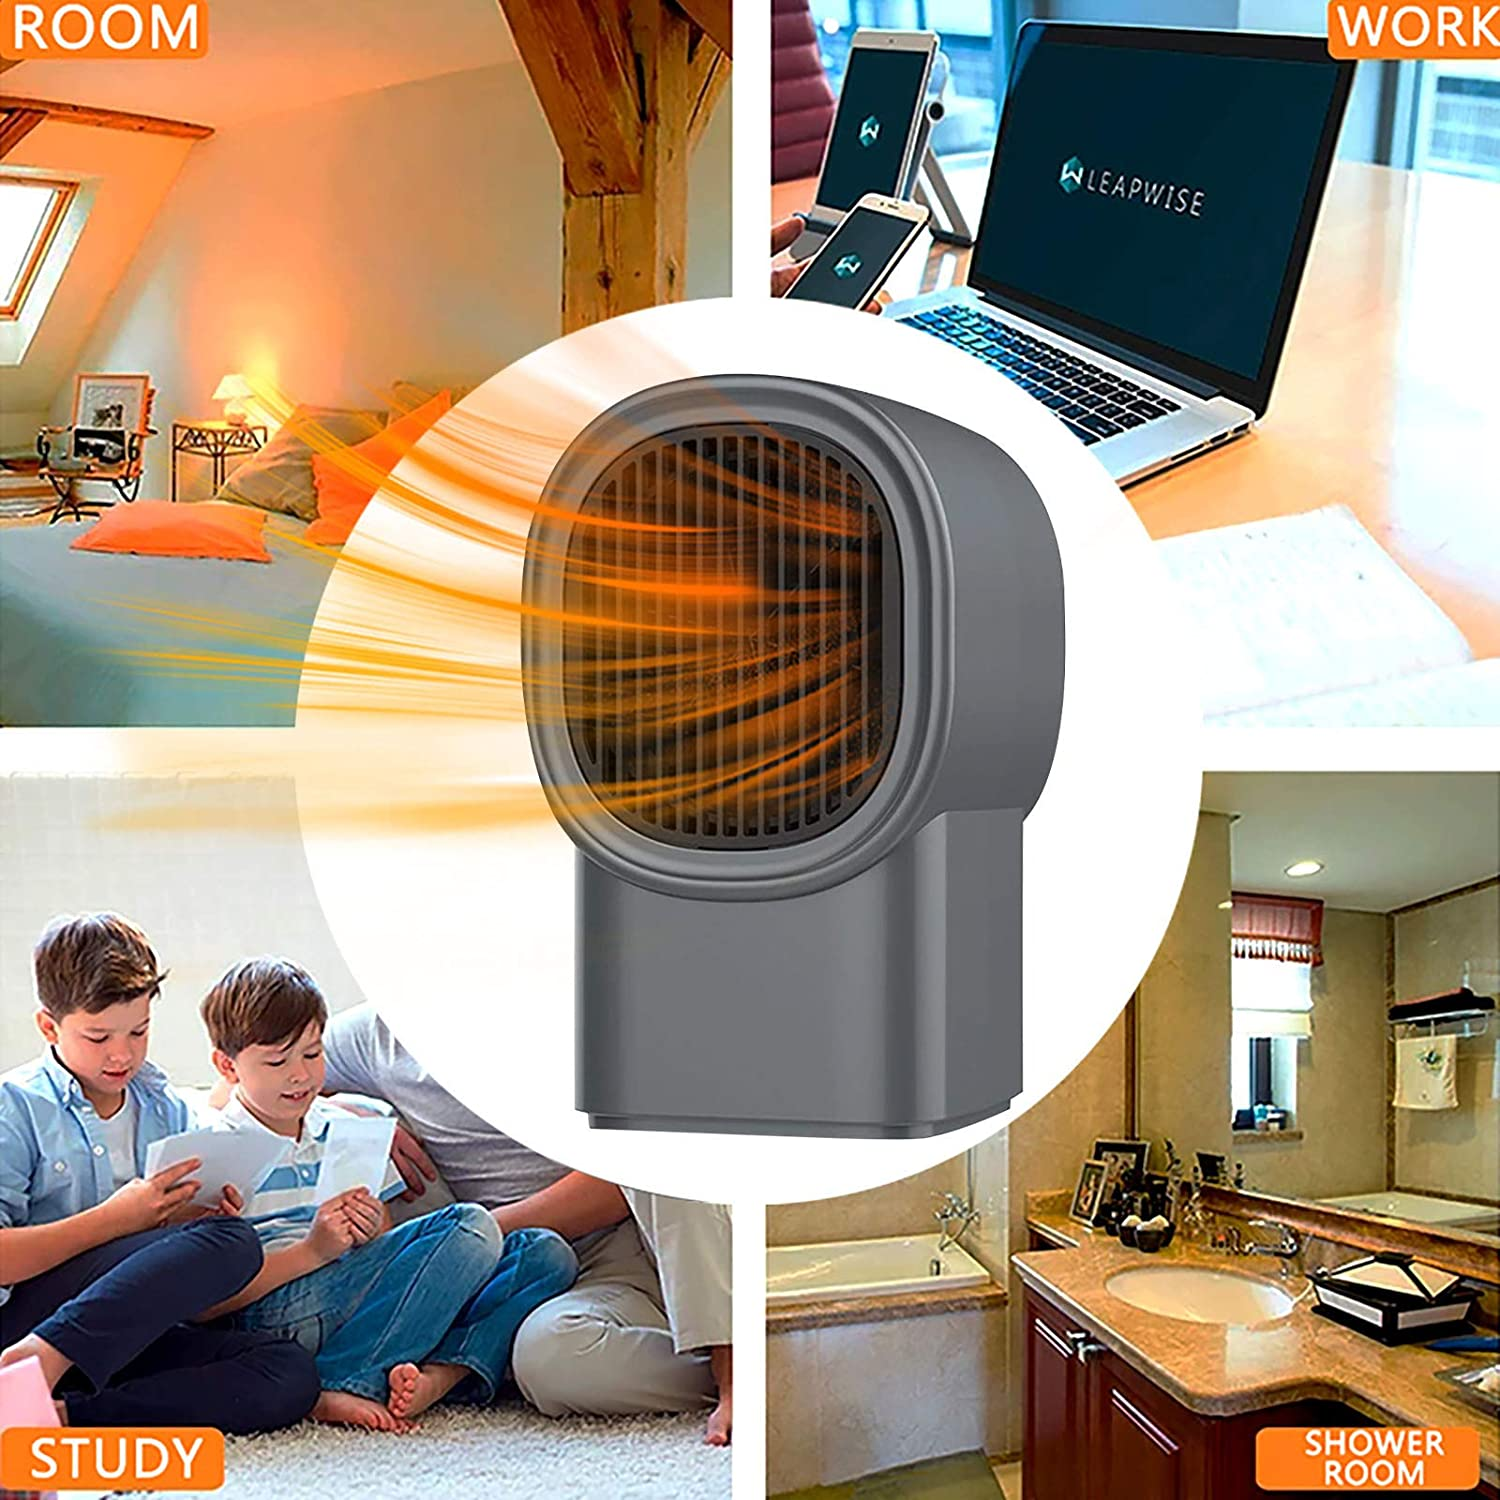 Adjustbale 3 Levels PTC Ceramic Heating for Home/&Office 3 Second Fast Heating Powerful/&Portable Home Heater-High Heating Efficiency